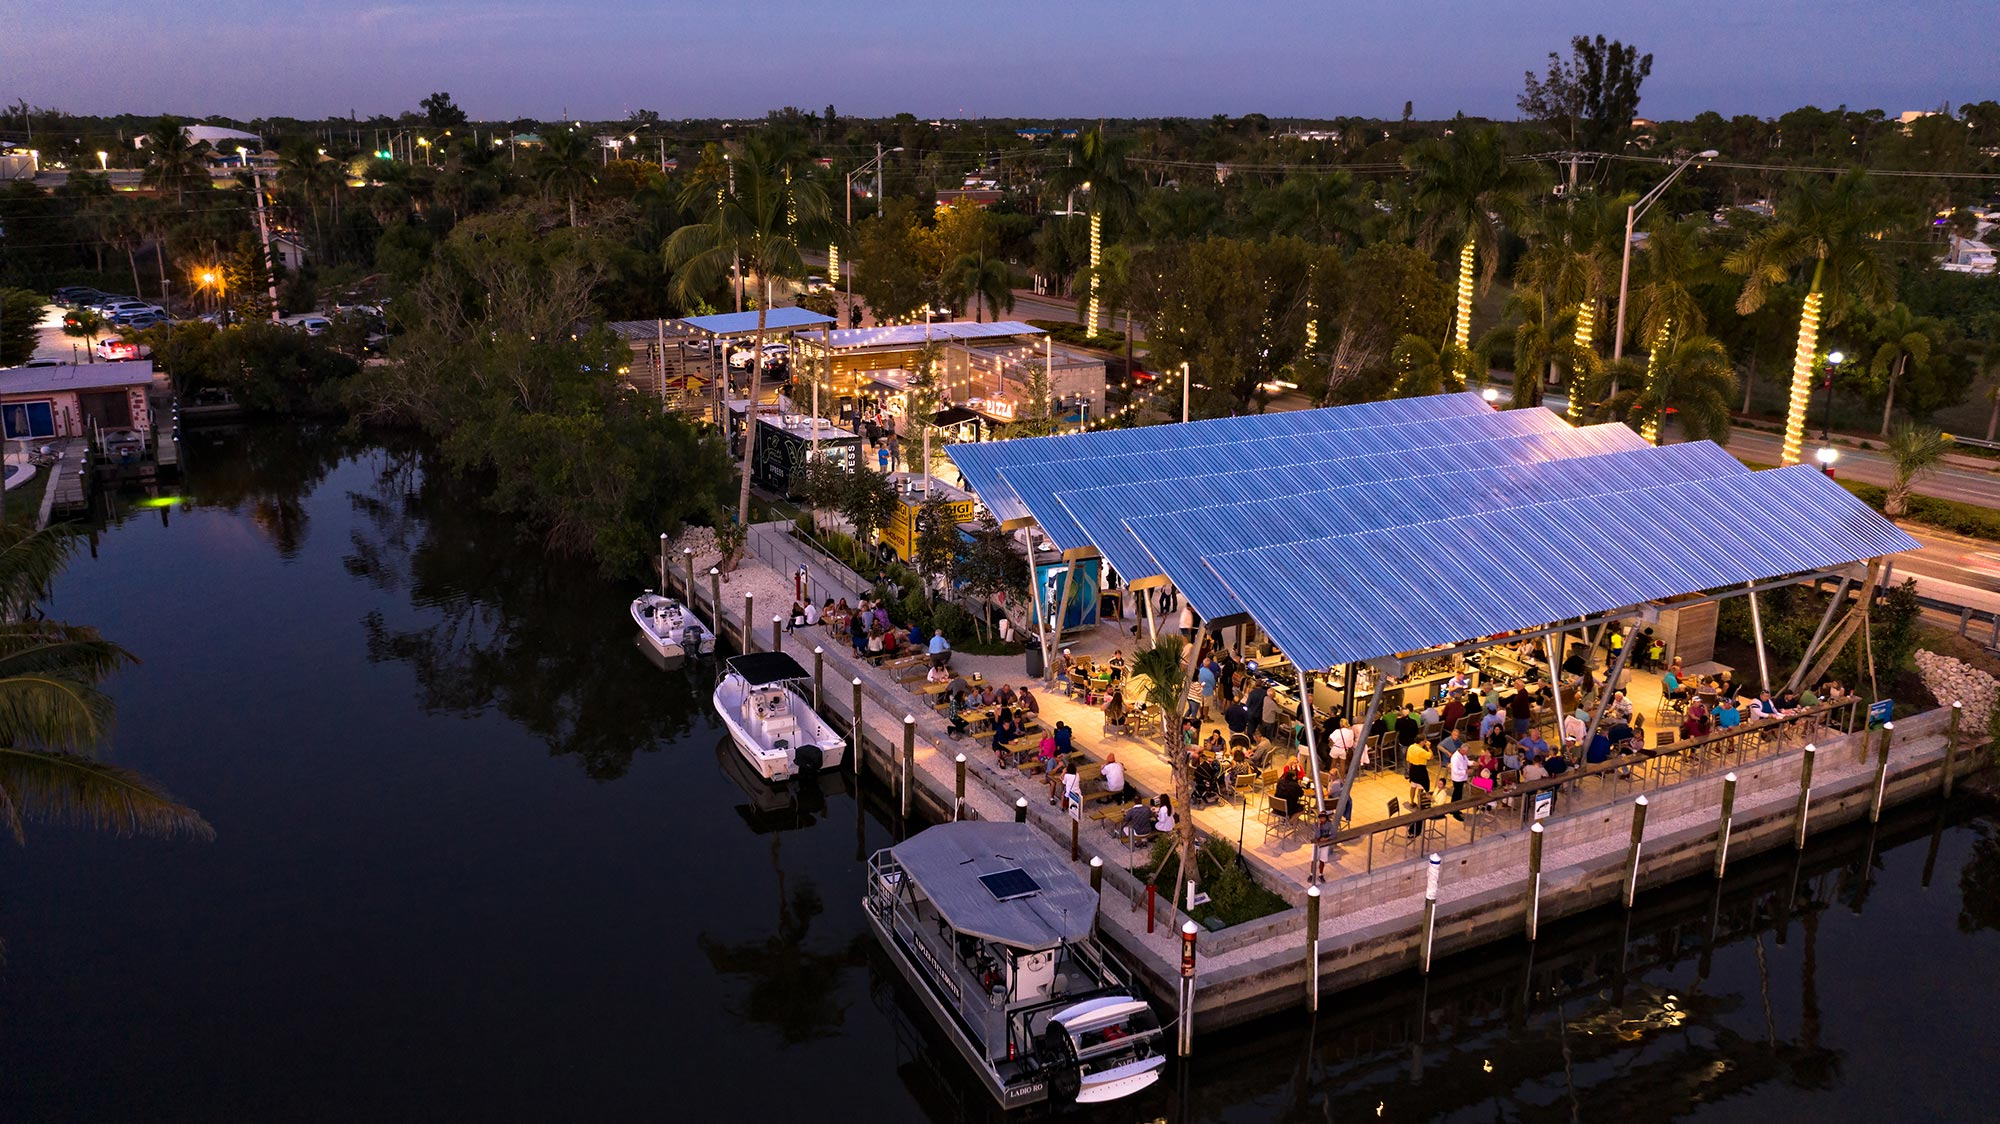 Drone photo of tiki bar and food truck park.